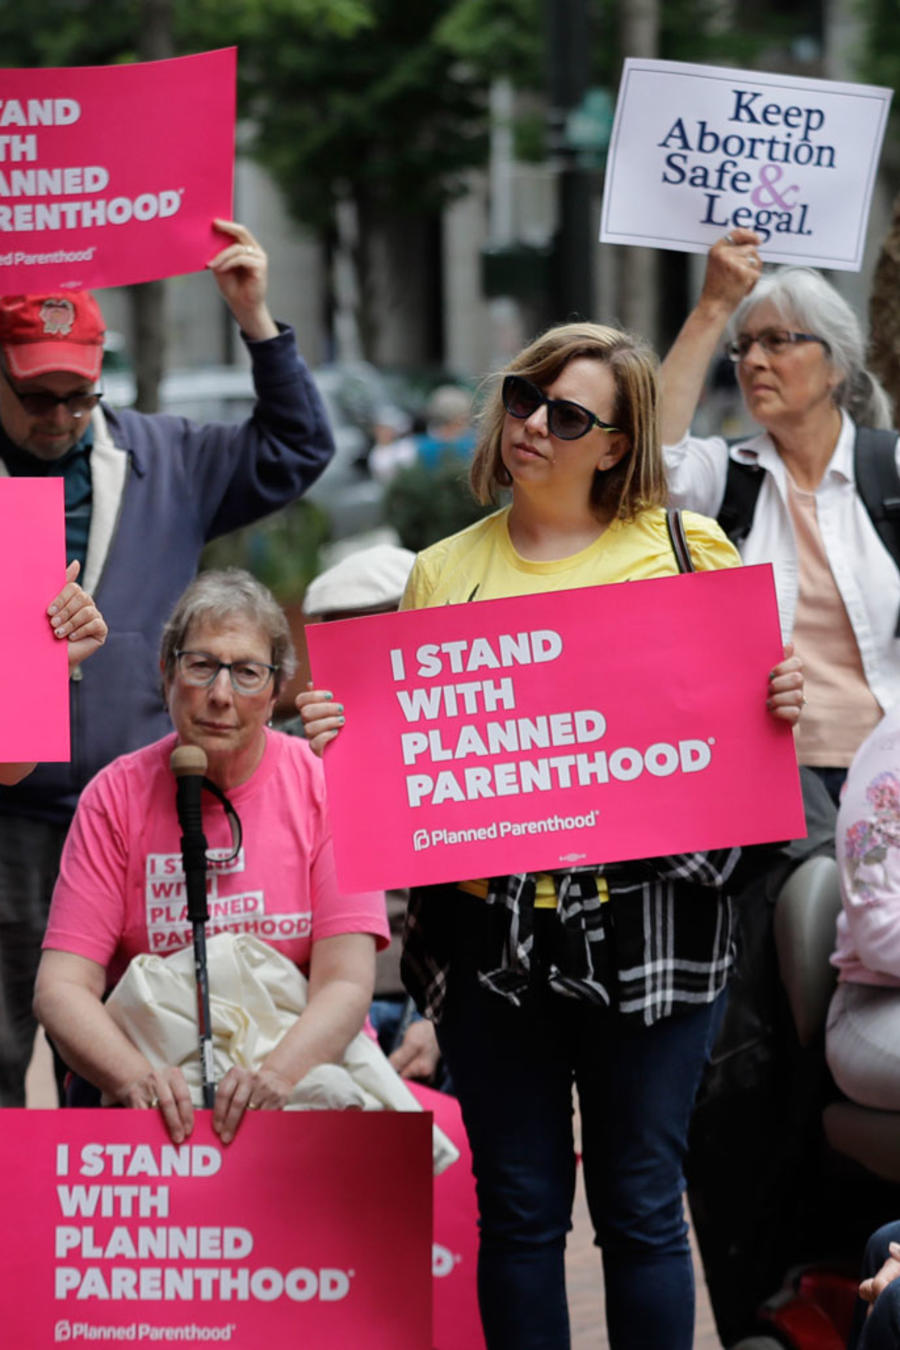 Manifestantes de Planned Parenthood contra el nombramiento de Brett Kavanaugh a la Corte Suprema en julio de 2018